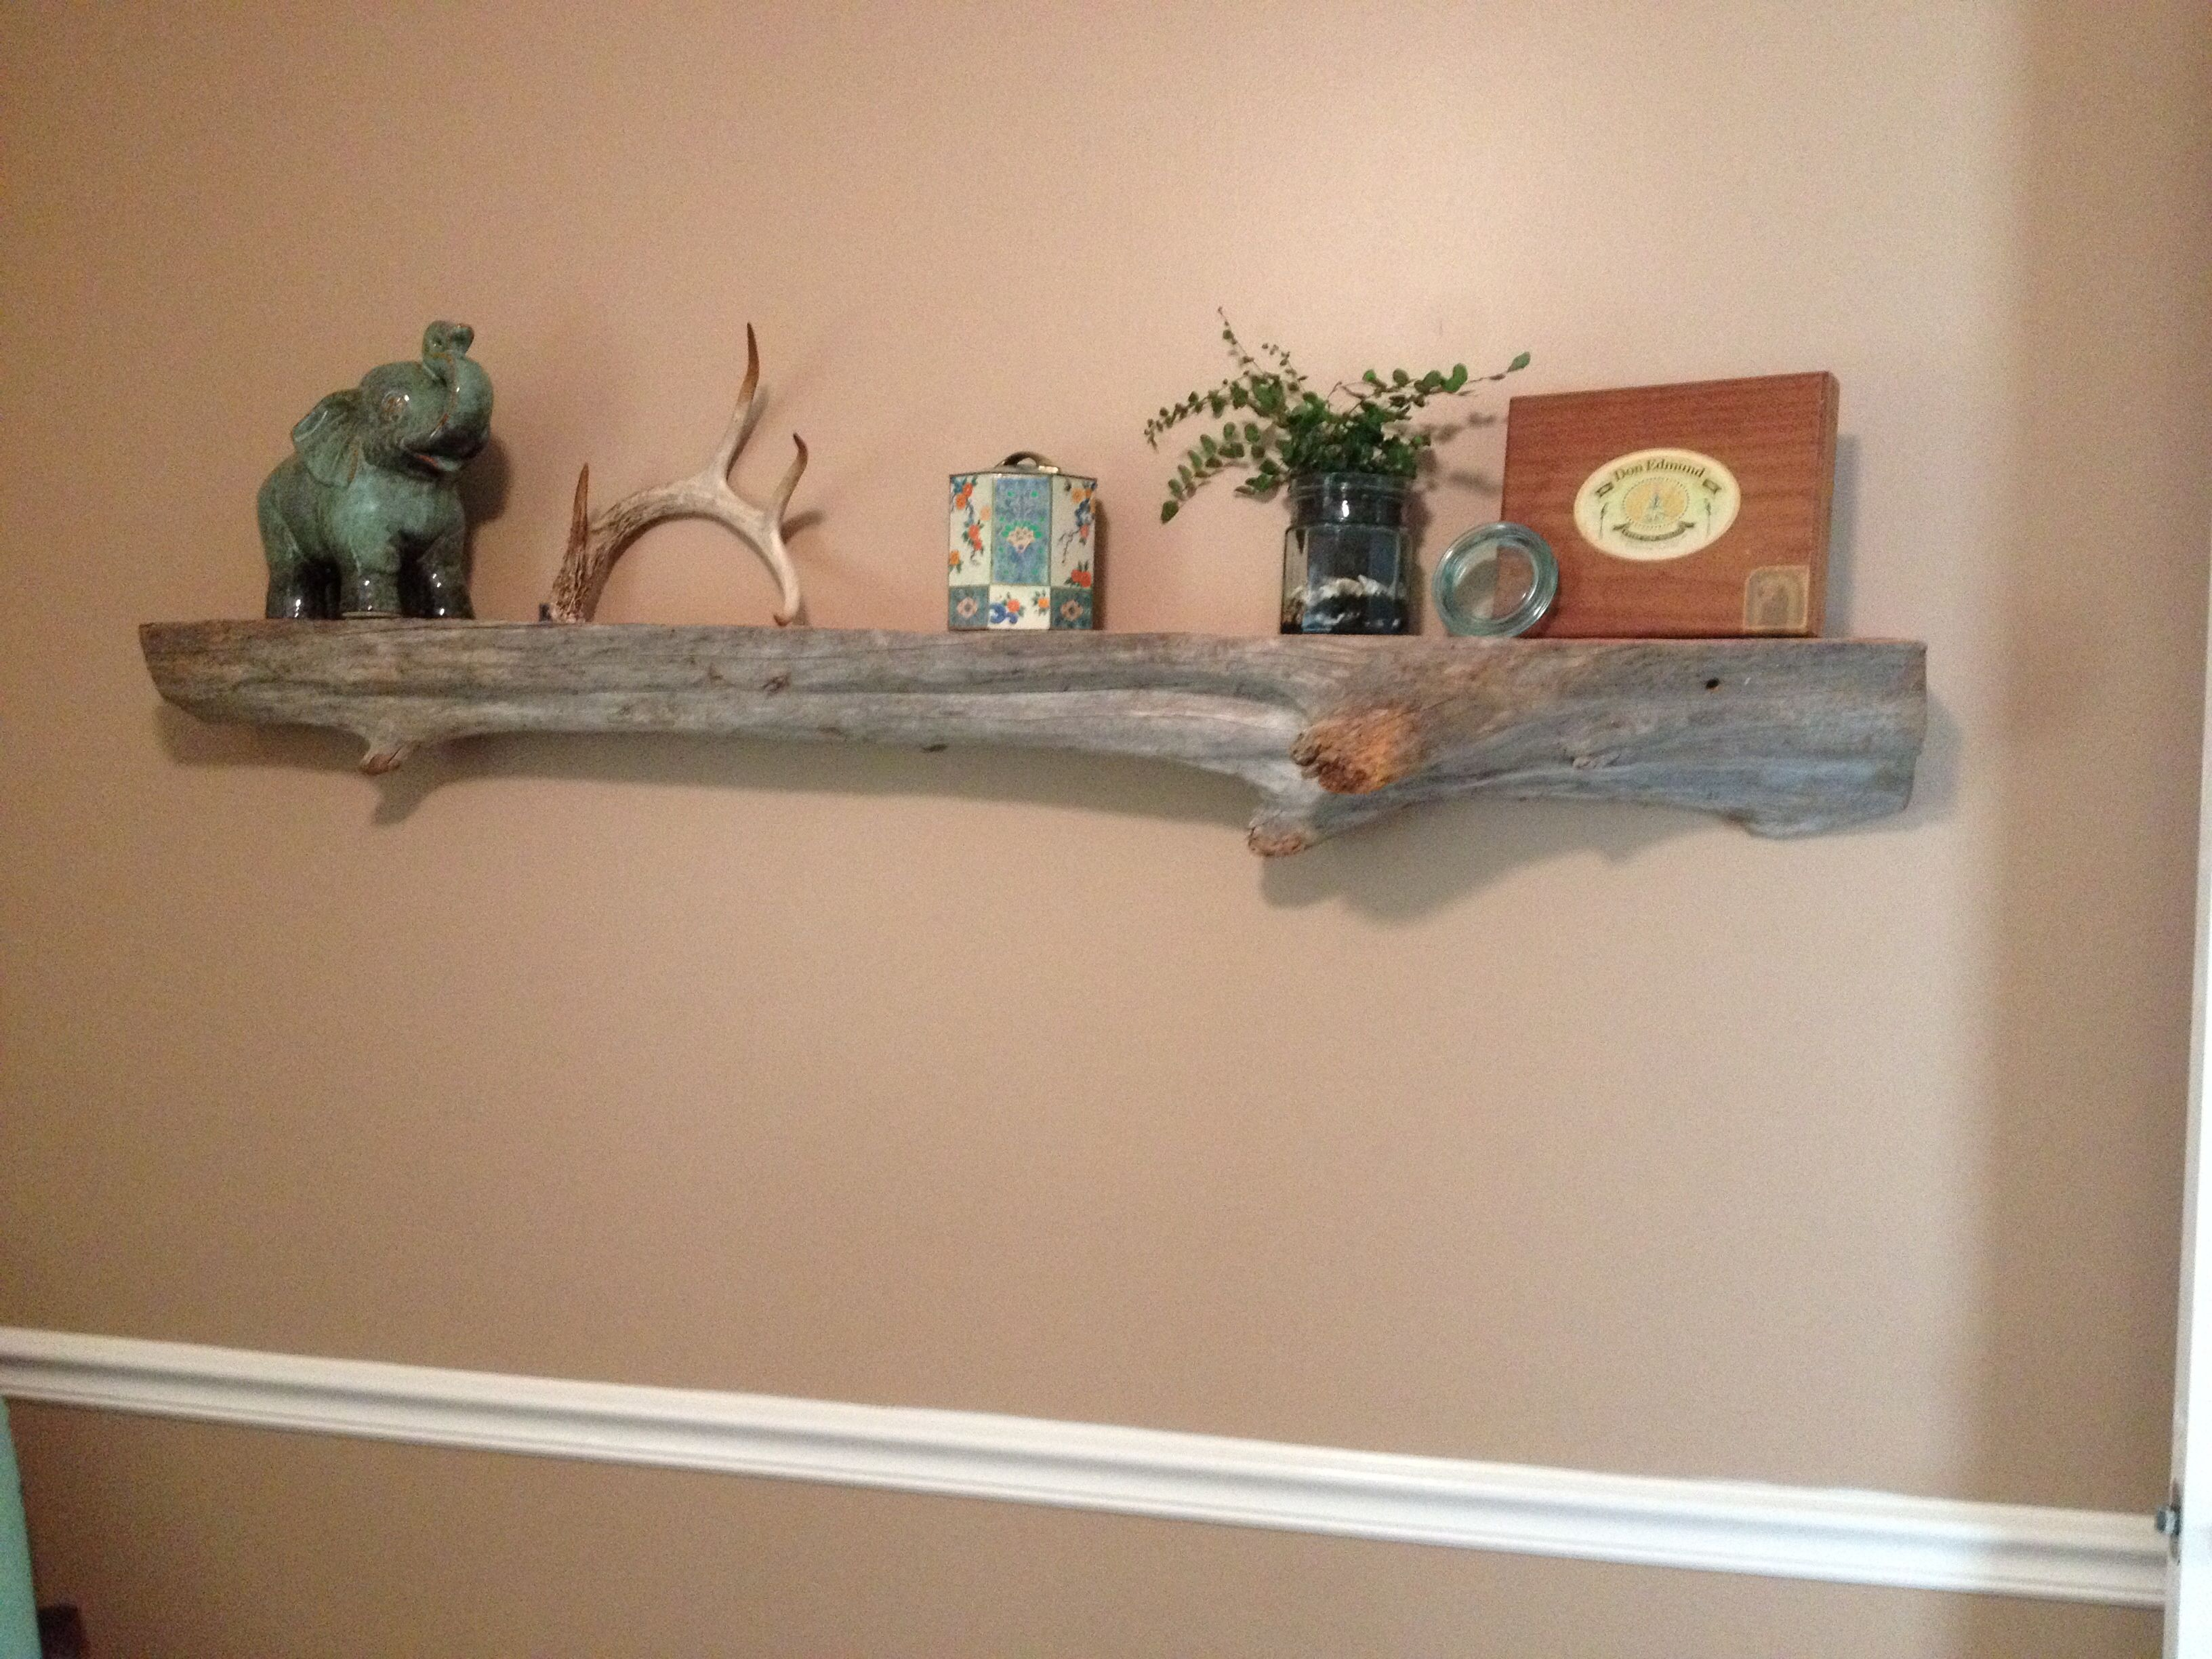 Driftwood Wall Shelf